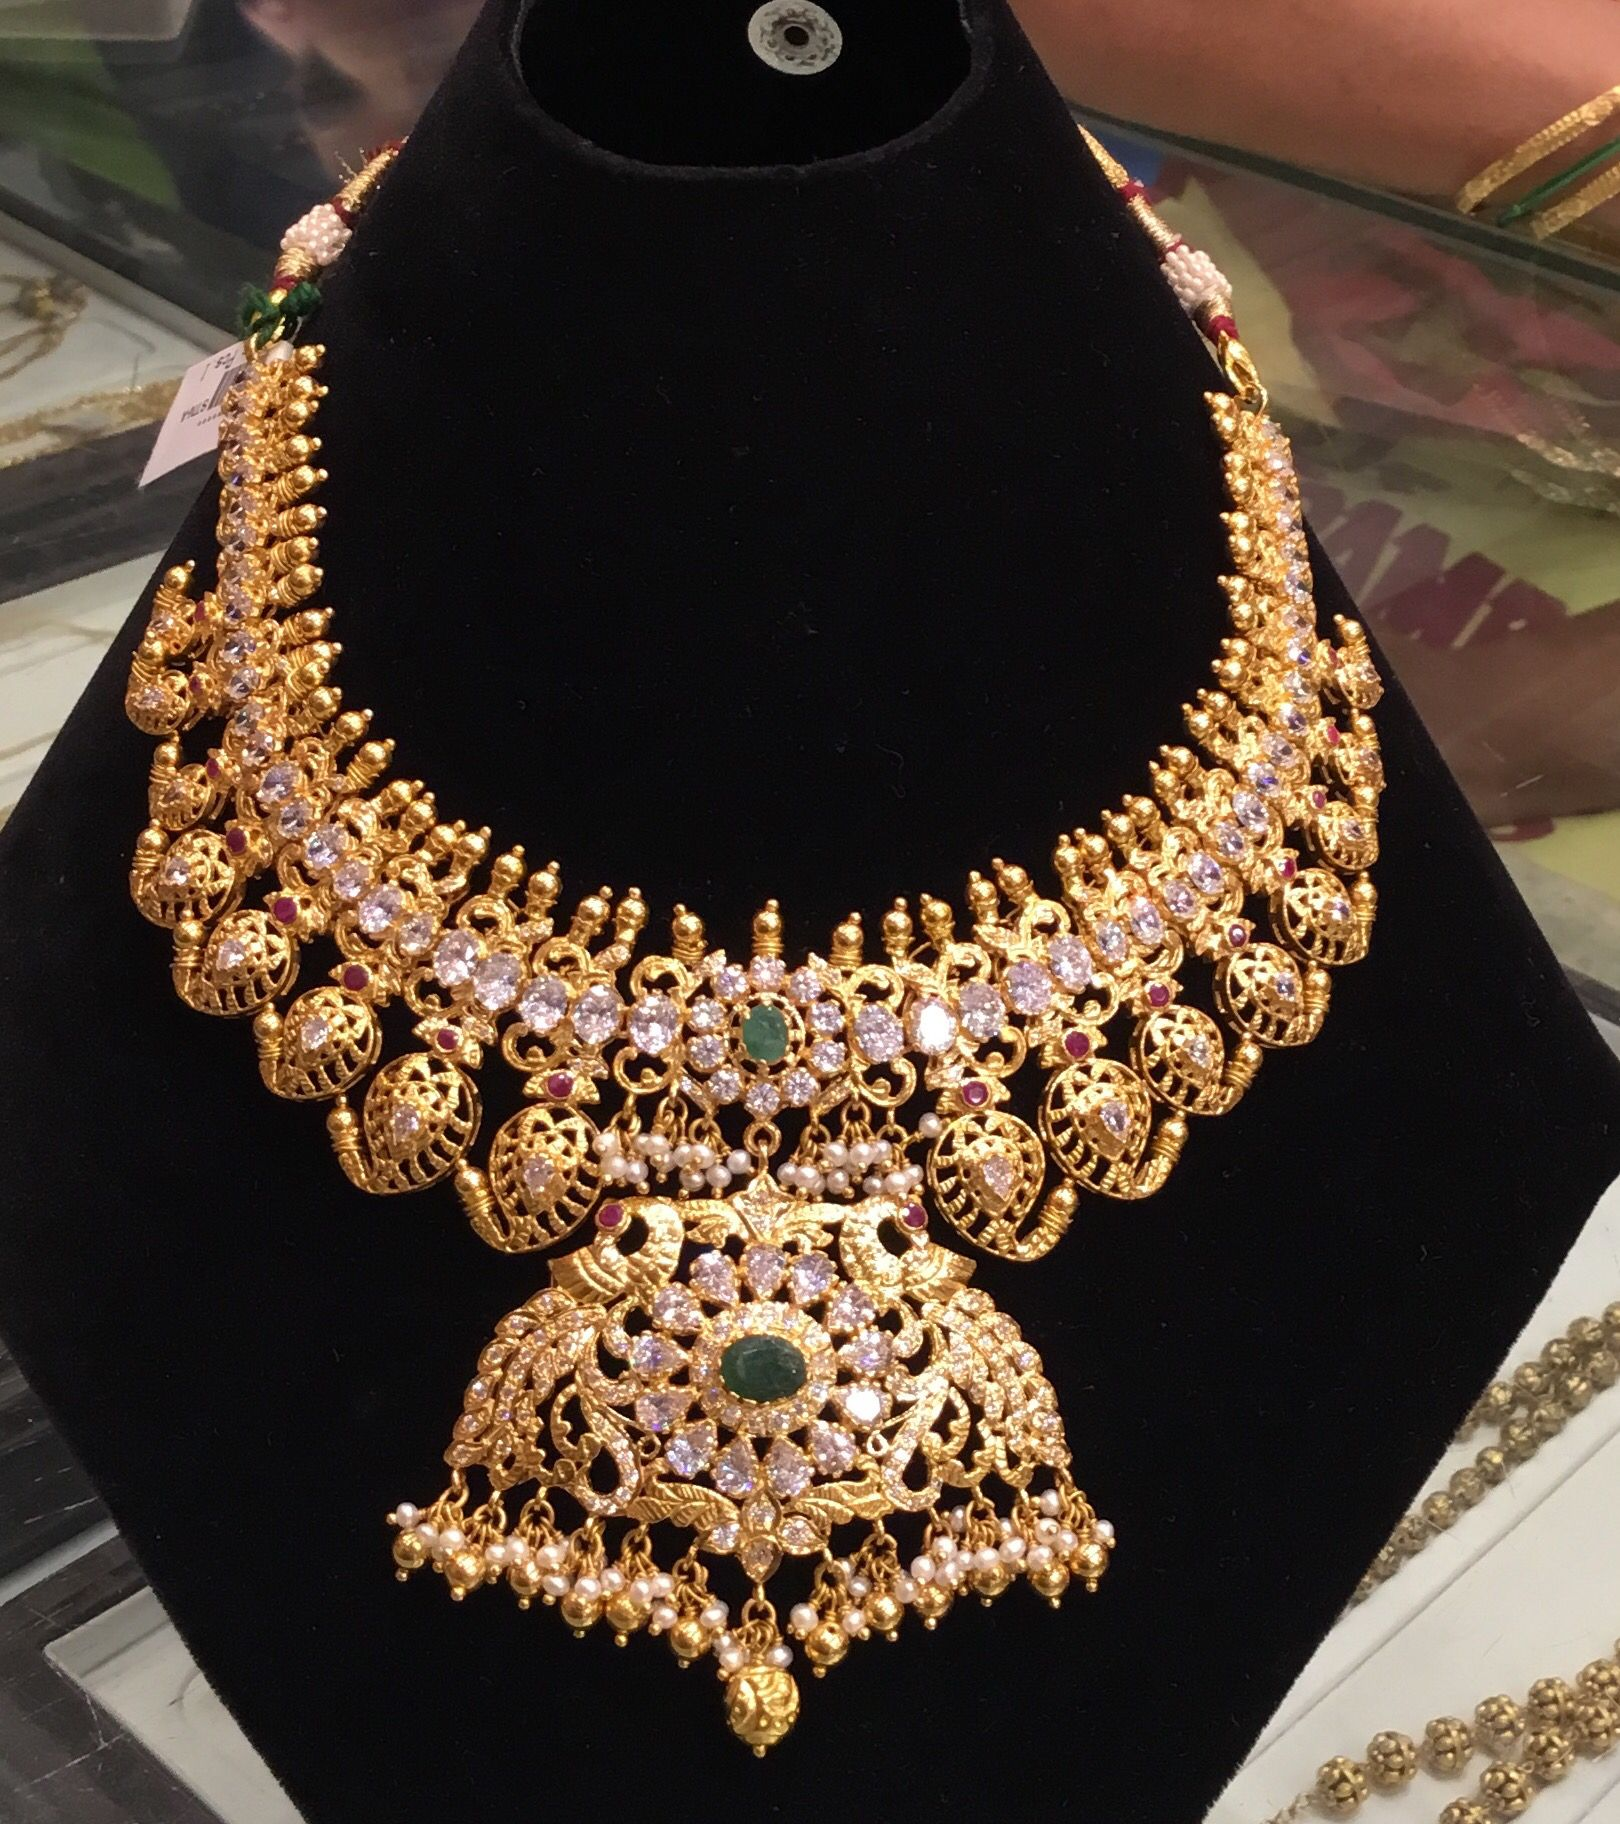 Latest gold necklace designs in grams pachi necklace latest jewellery - 57 Grams Heavy Pachi Choker Jewellery Designs See More 68 Gms Necklace